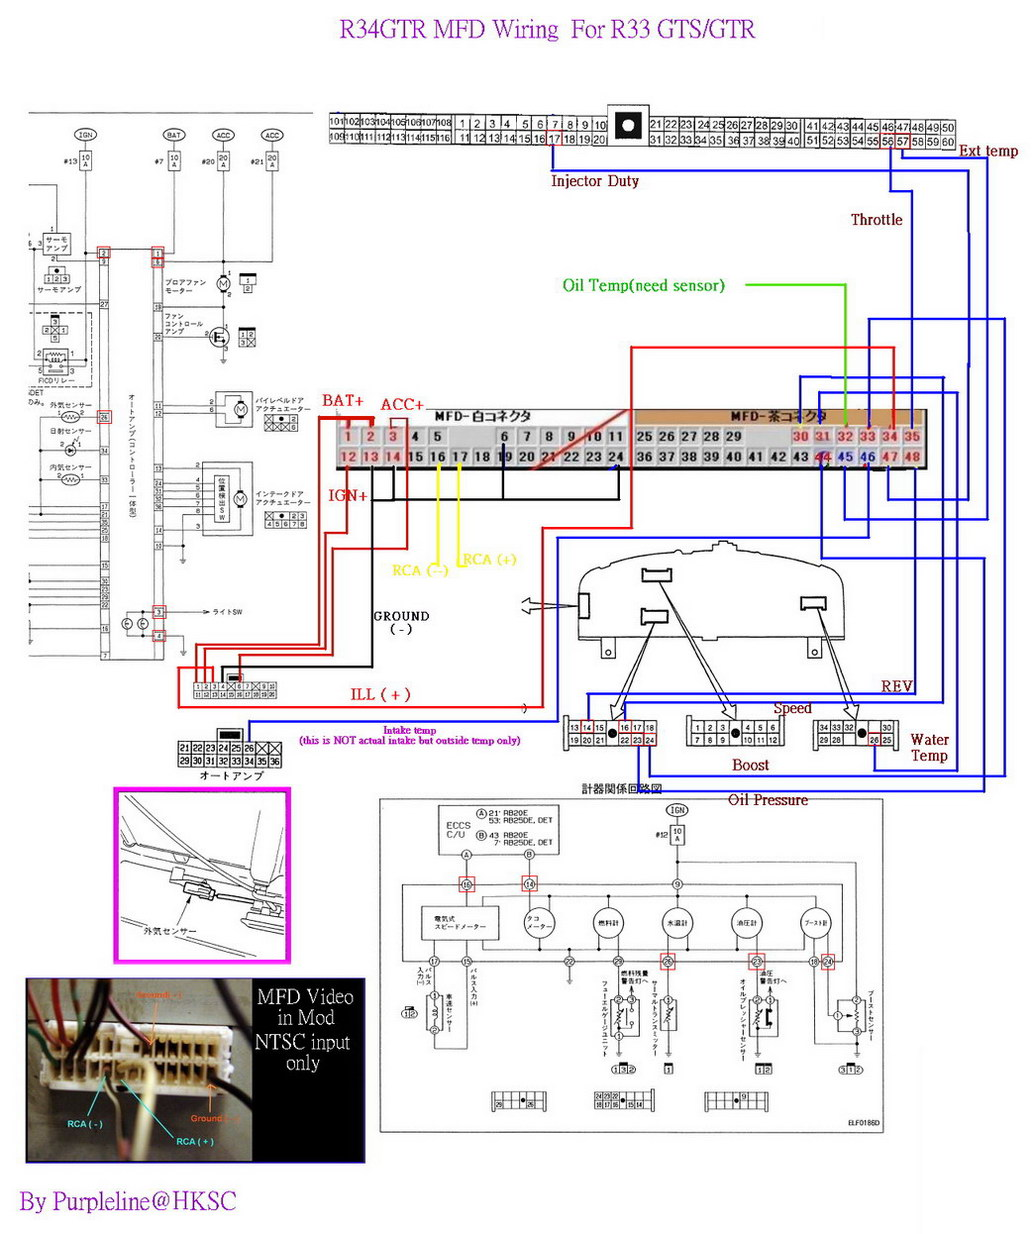 r33 auto wiring diagram r34 gtr mfd unit zerotohundred forums yamaha auto wiring diagram page 3 circuit and #8